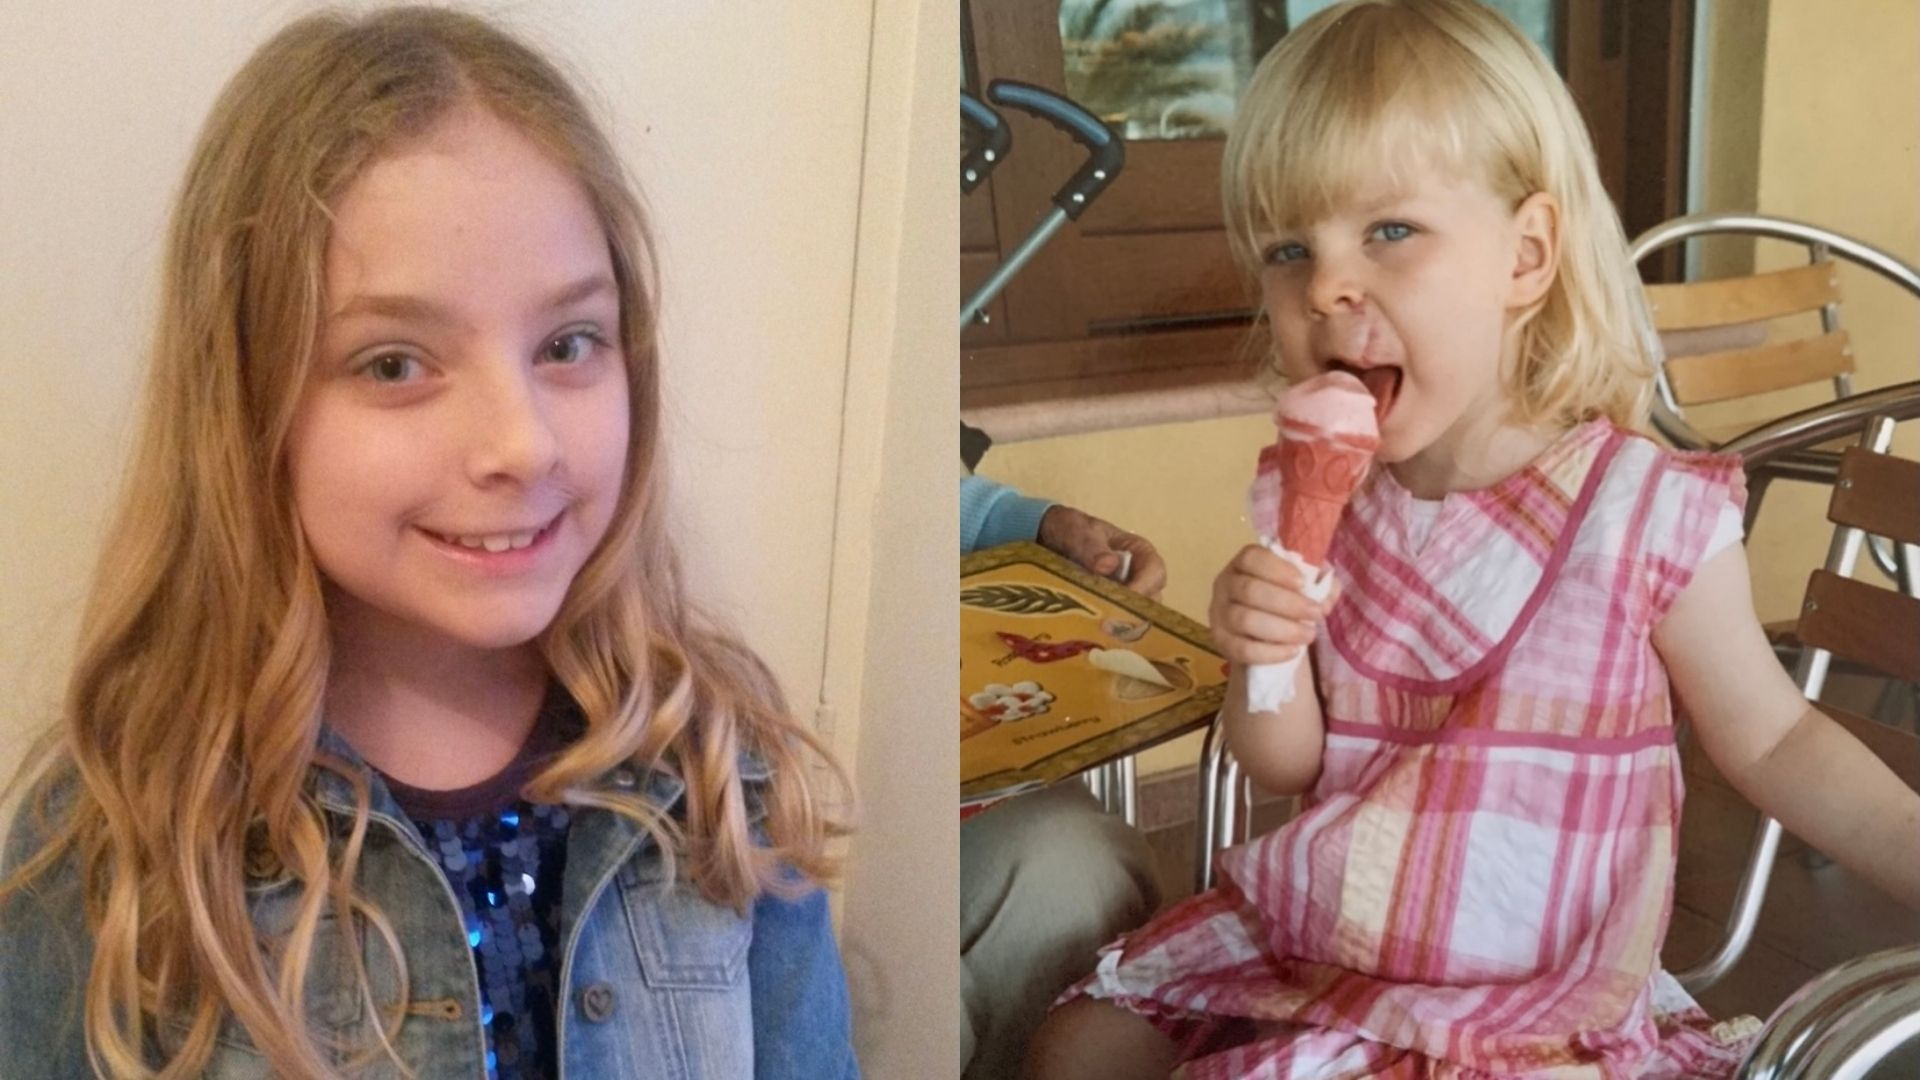 Left: Abbie at 10-11 years of age. She has shoulder length blonde hair and some scarring above her mouth. She is wearing a denim jacket, standing against a cream wall, and smiling at the camera. Right: Abbie at 4 years old. She has some scarring above her mouth. She's wearing a red and white check dress and eating a ice cream cone while looking at the camera.